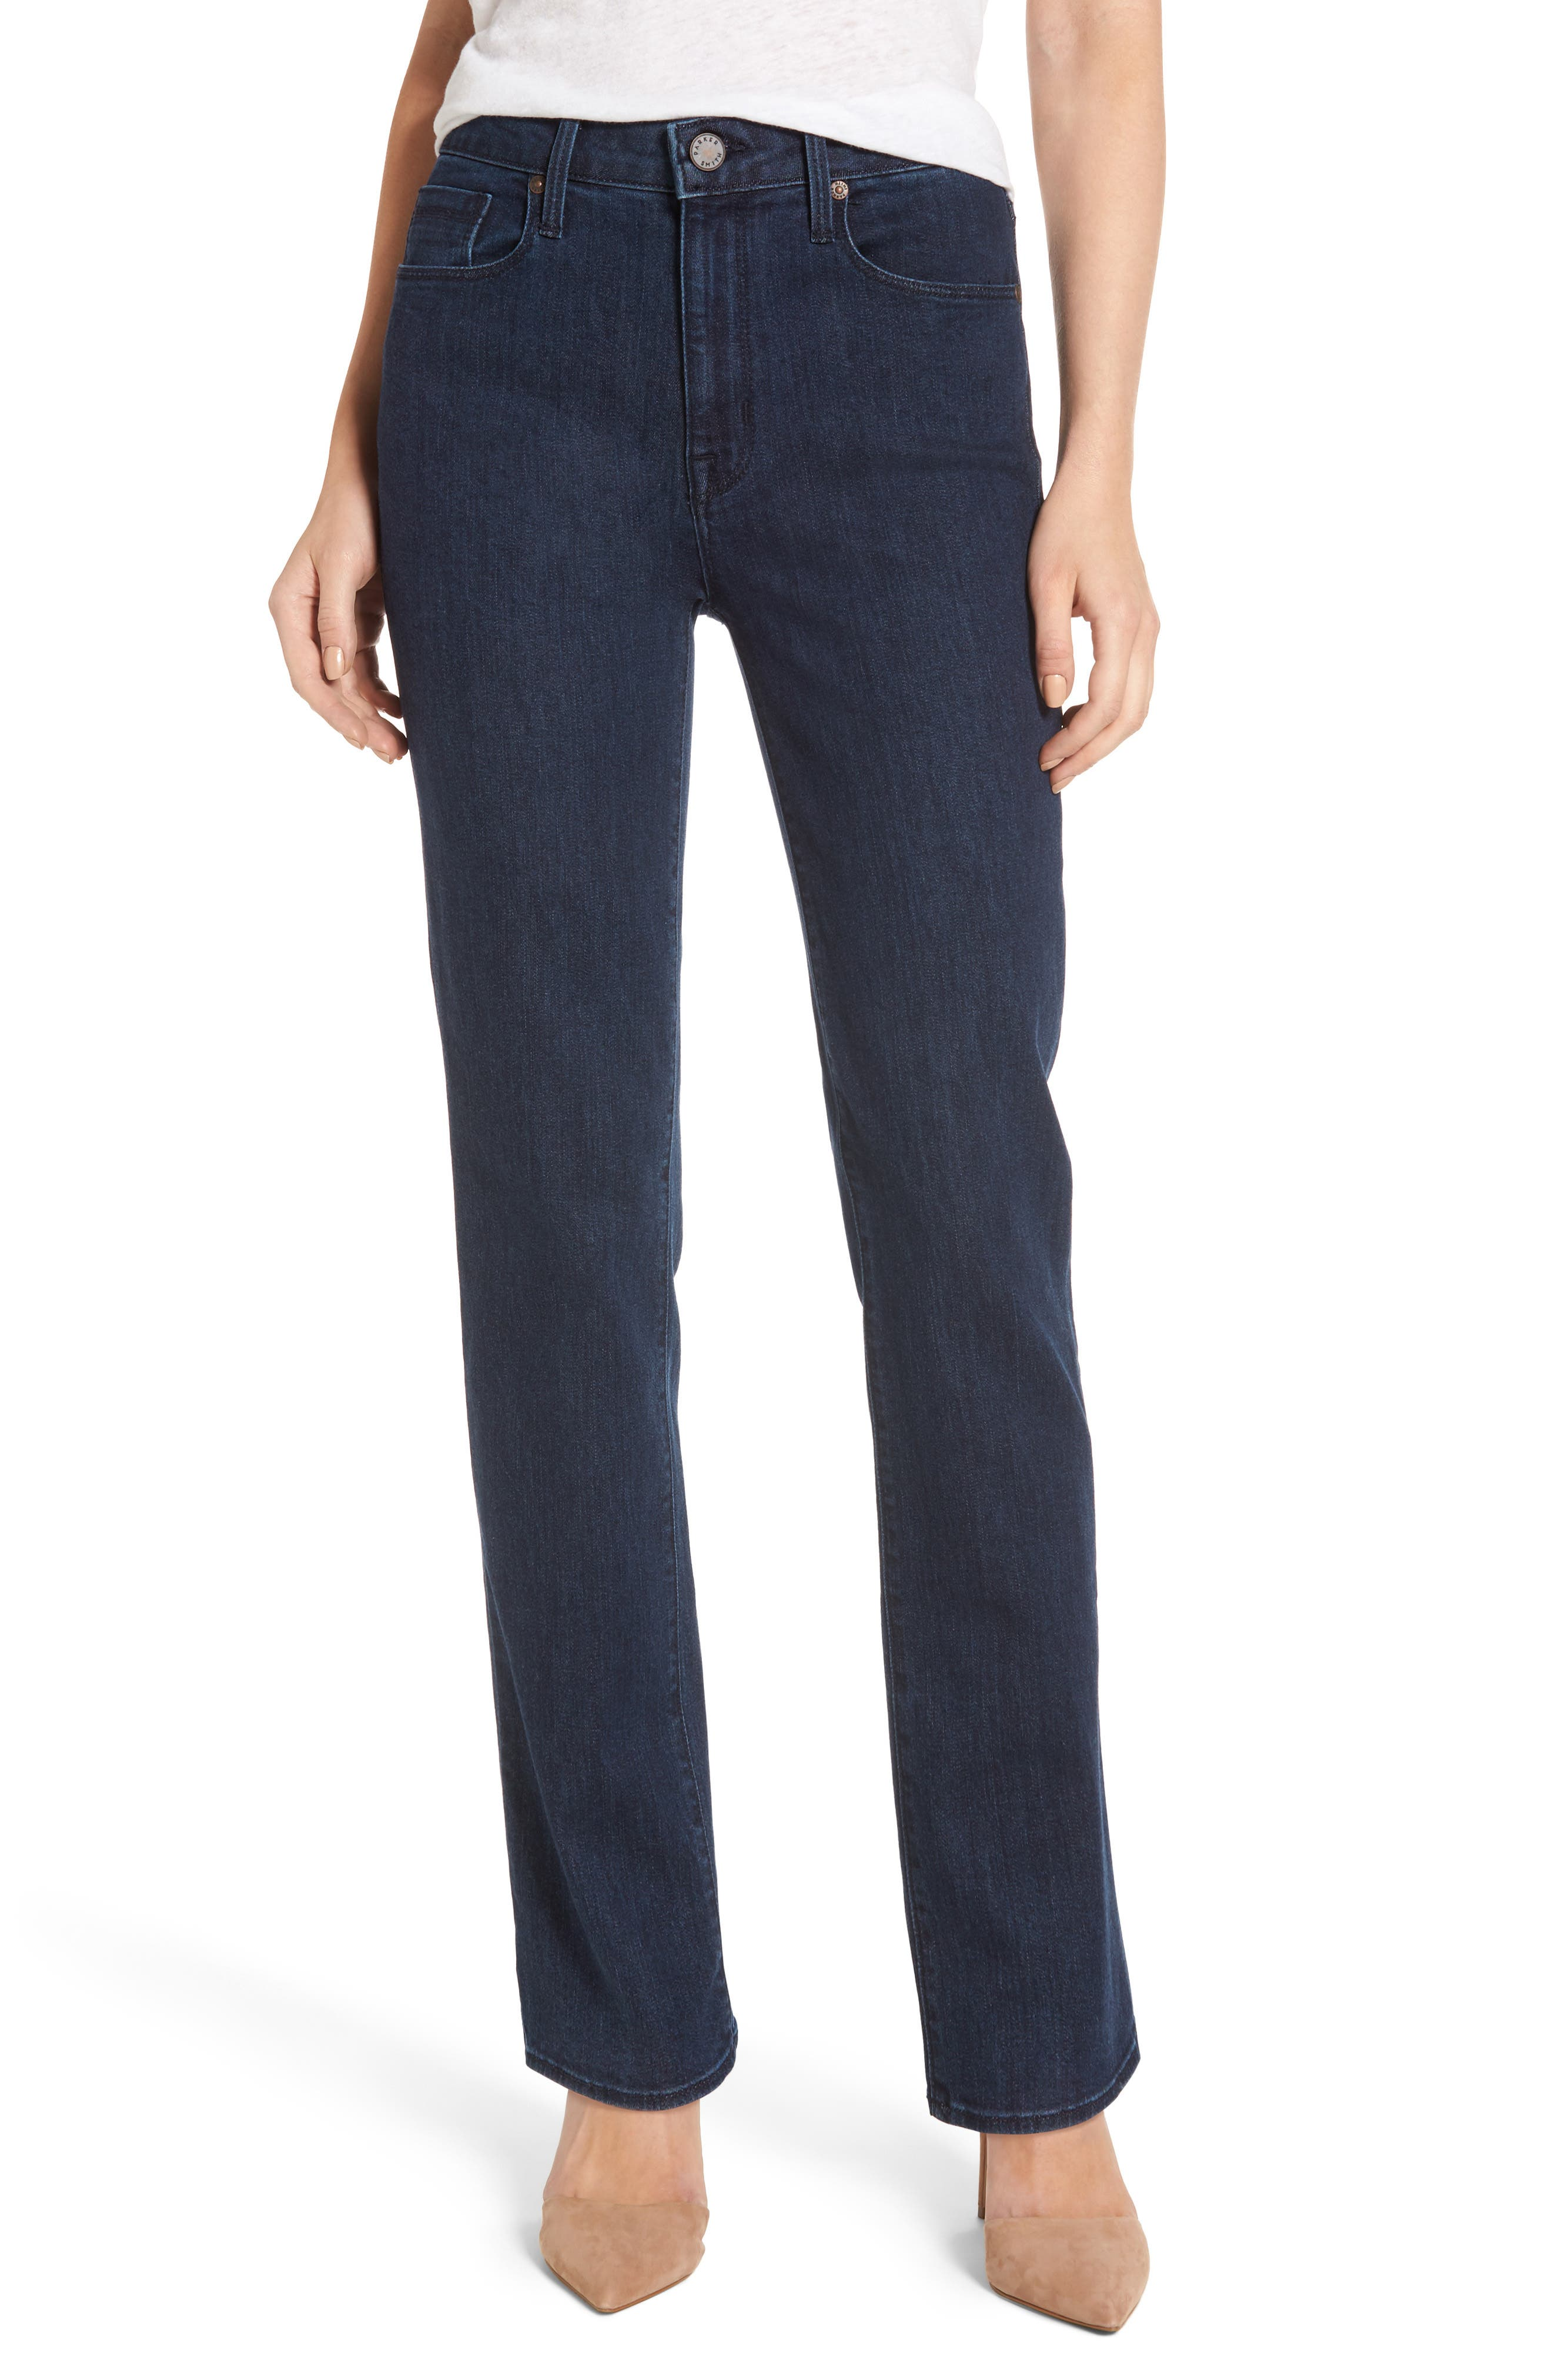 Alternate Image 1 Selected - PARKER SMITH Bombshell Runaround Straight Leg Jeans (Baltic)